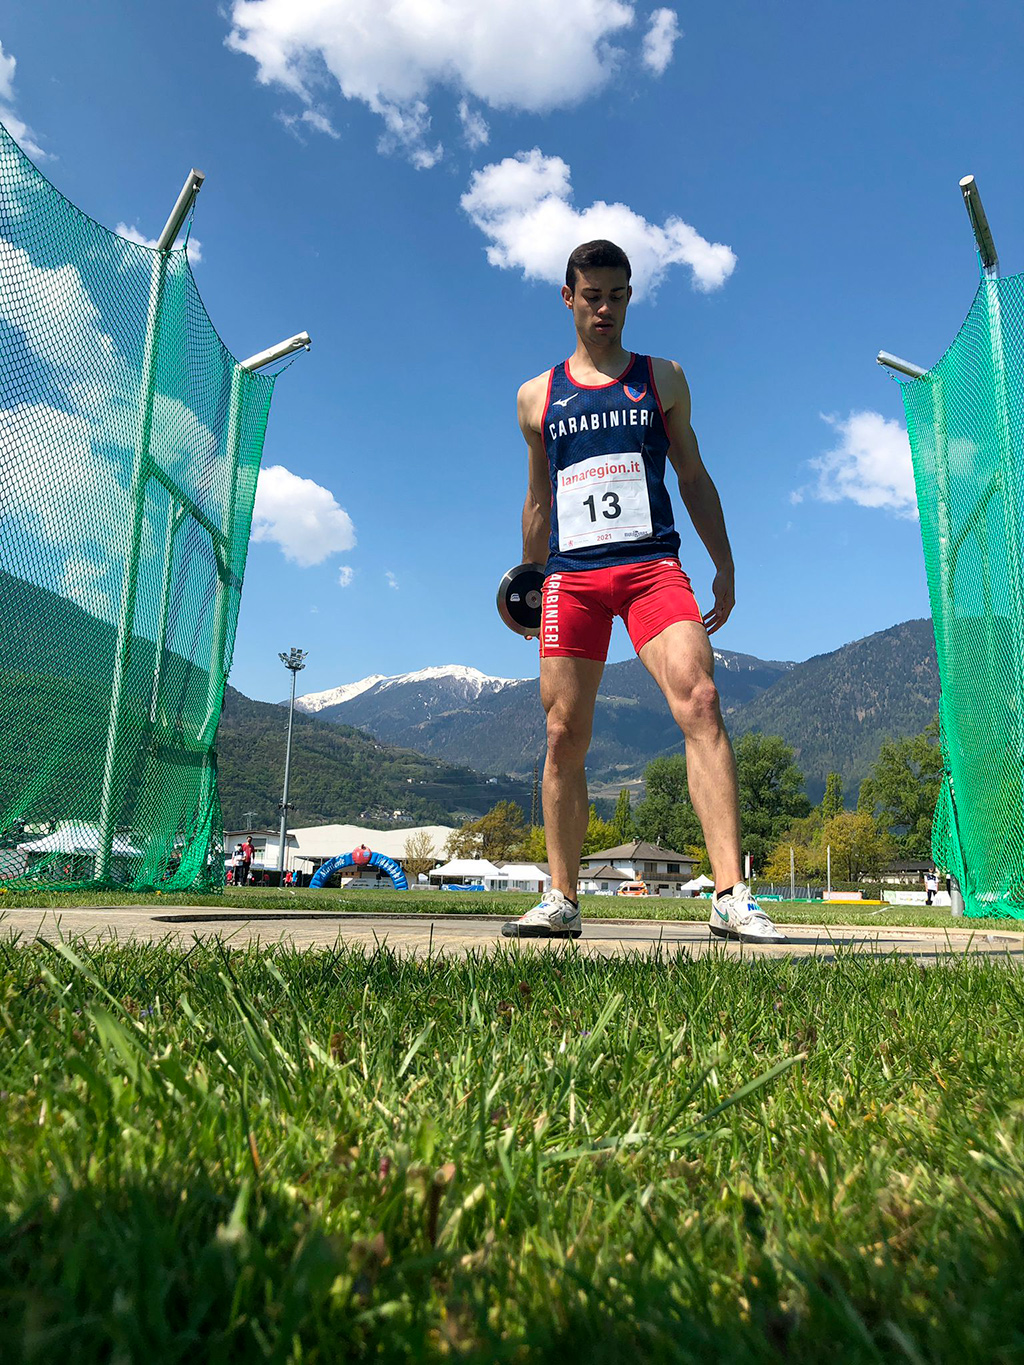 Super Dario Dester! PB at the first outdoor season competition.